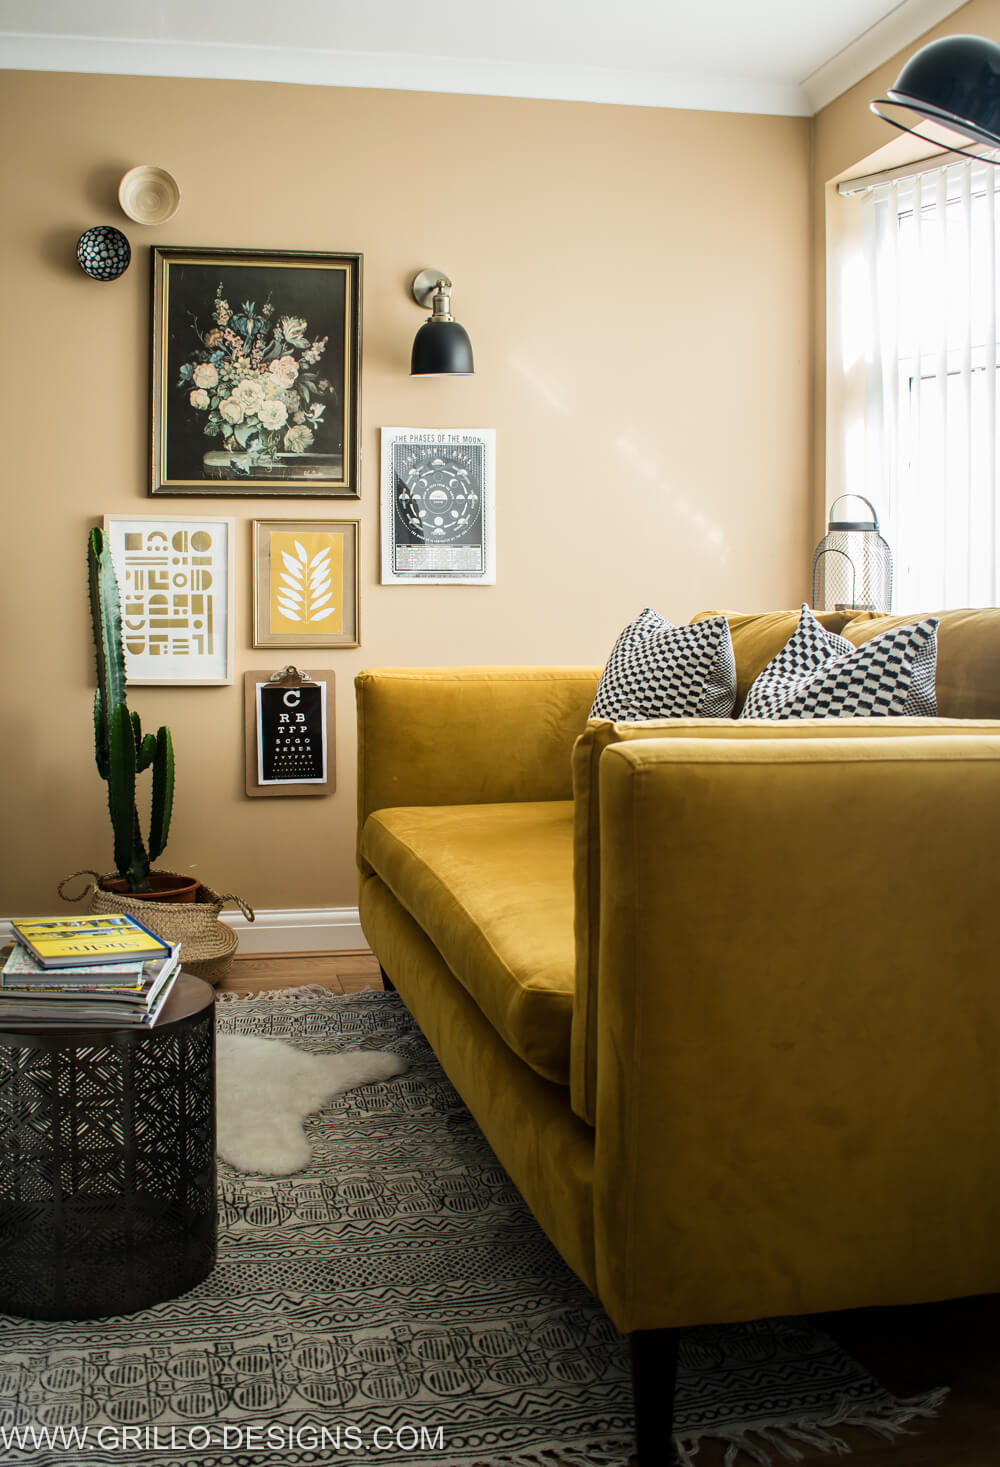 Styles yellow velvet sofa in living room / grillo designs